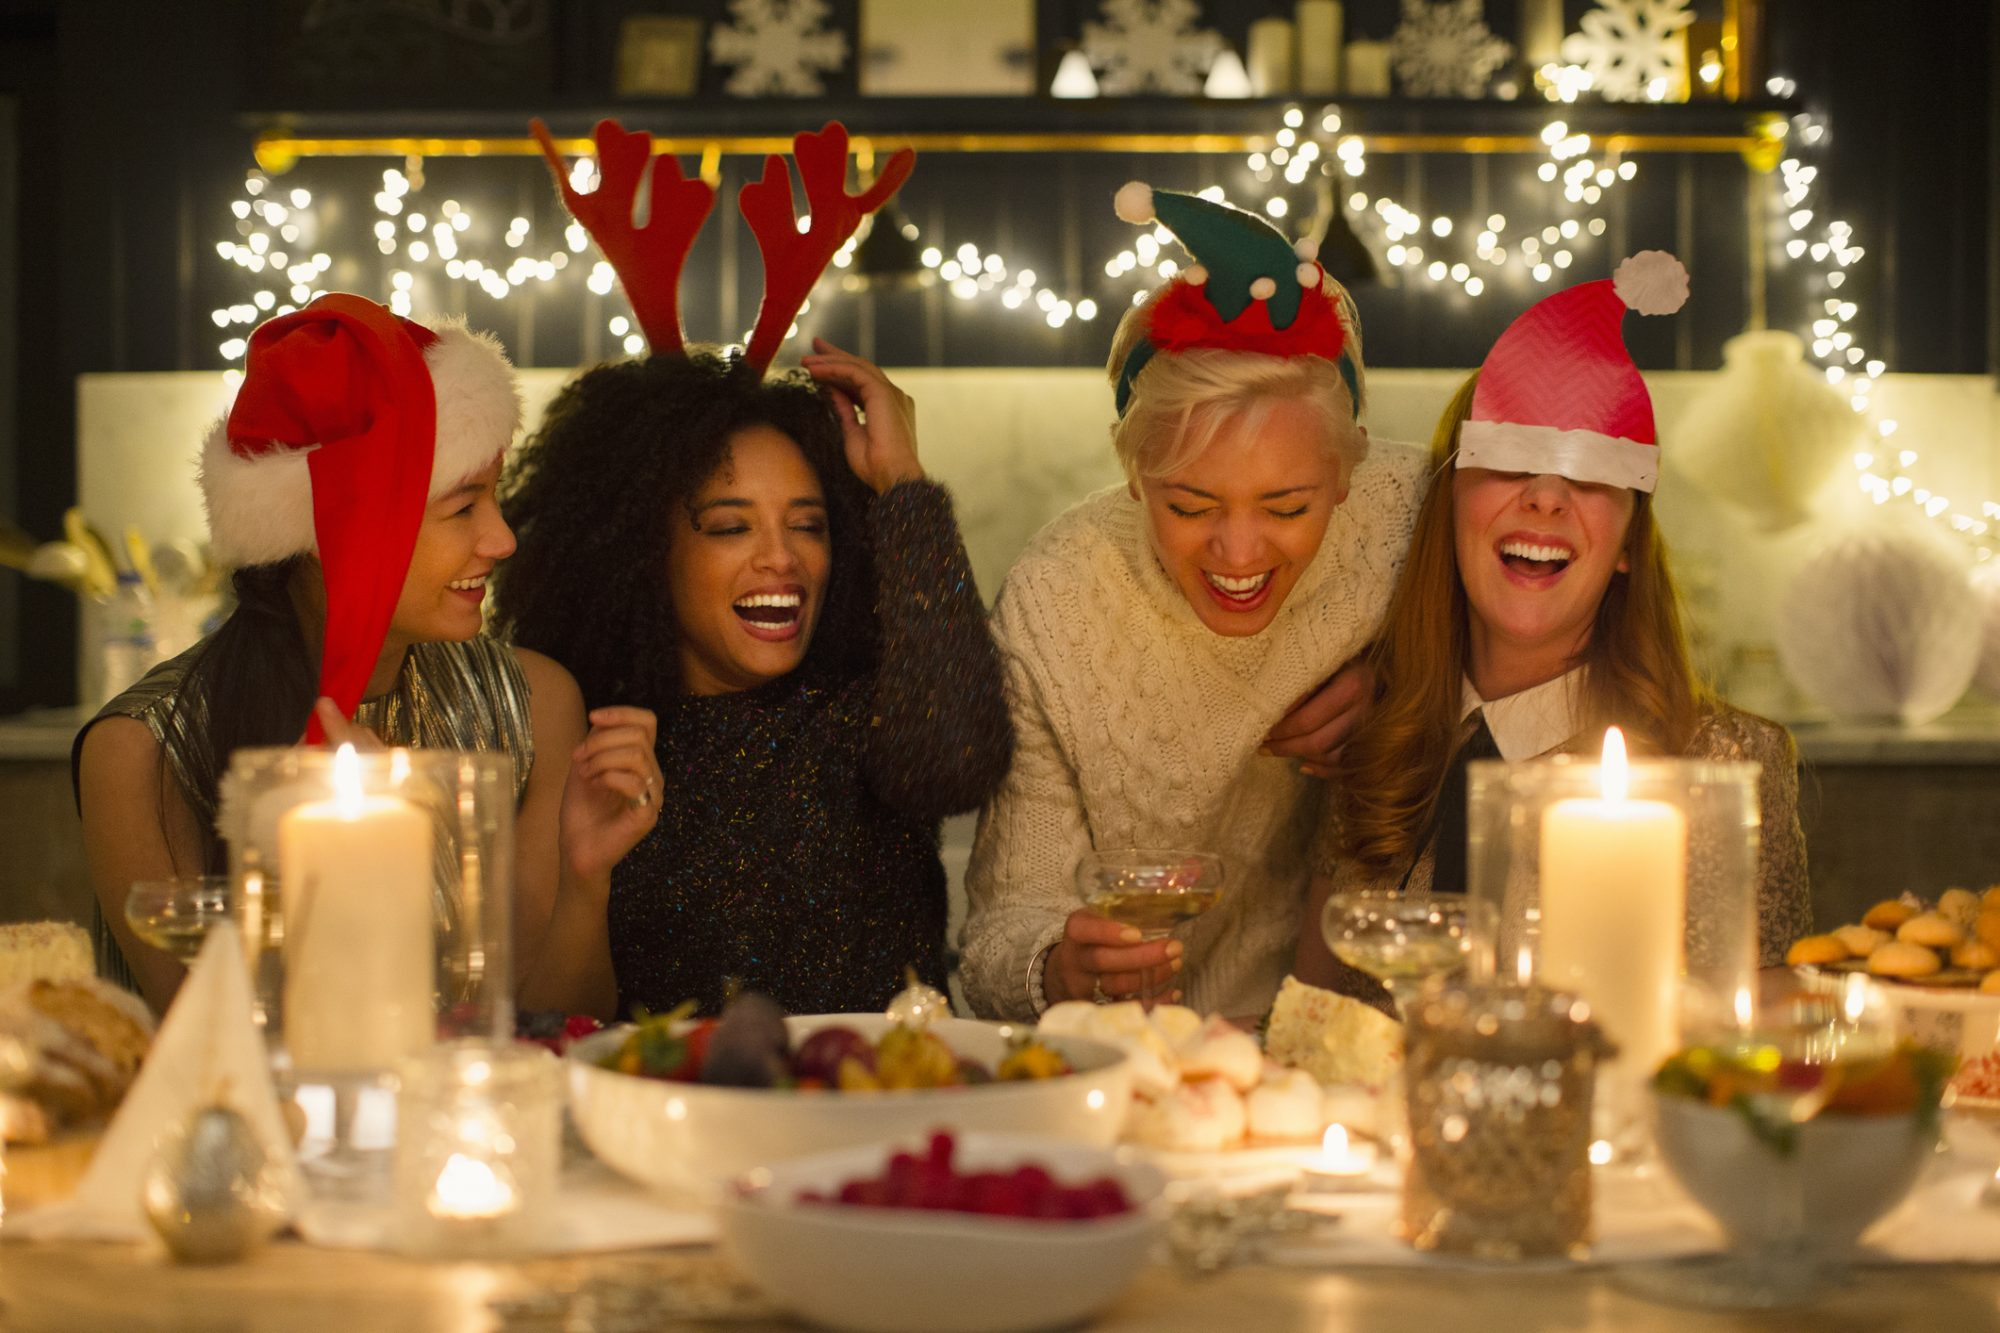 Christmas Laughing Friends